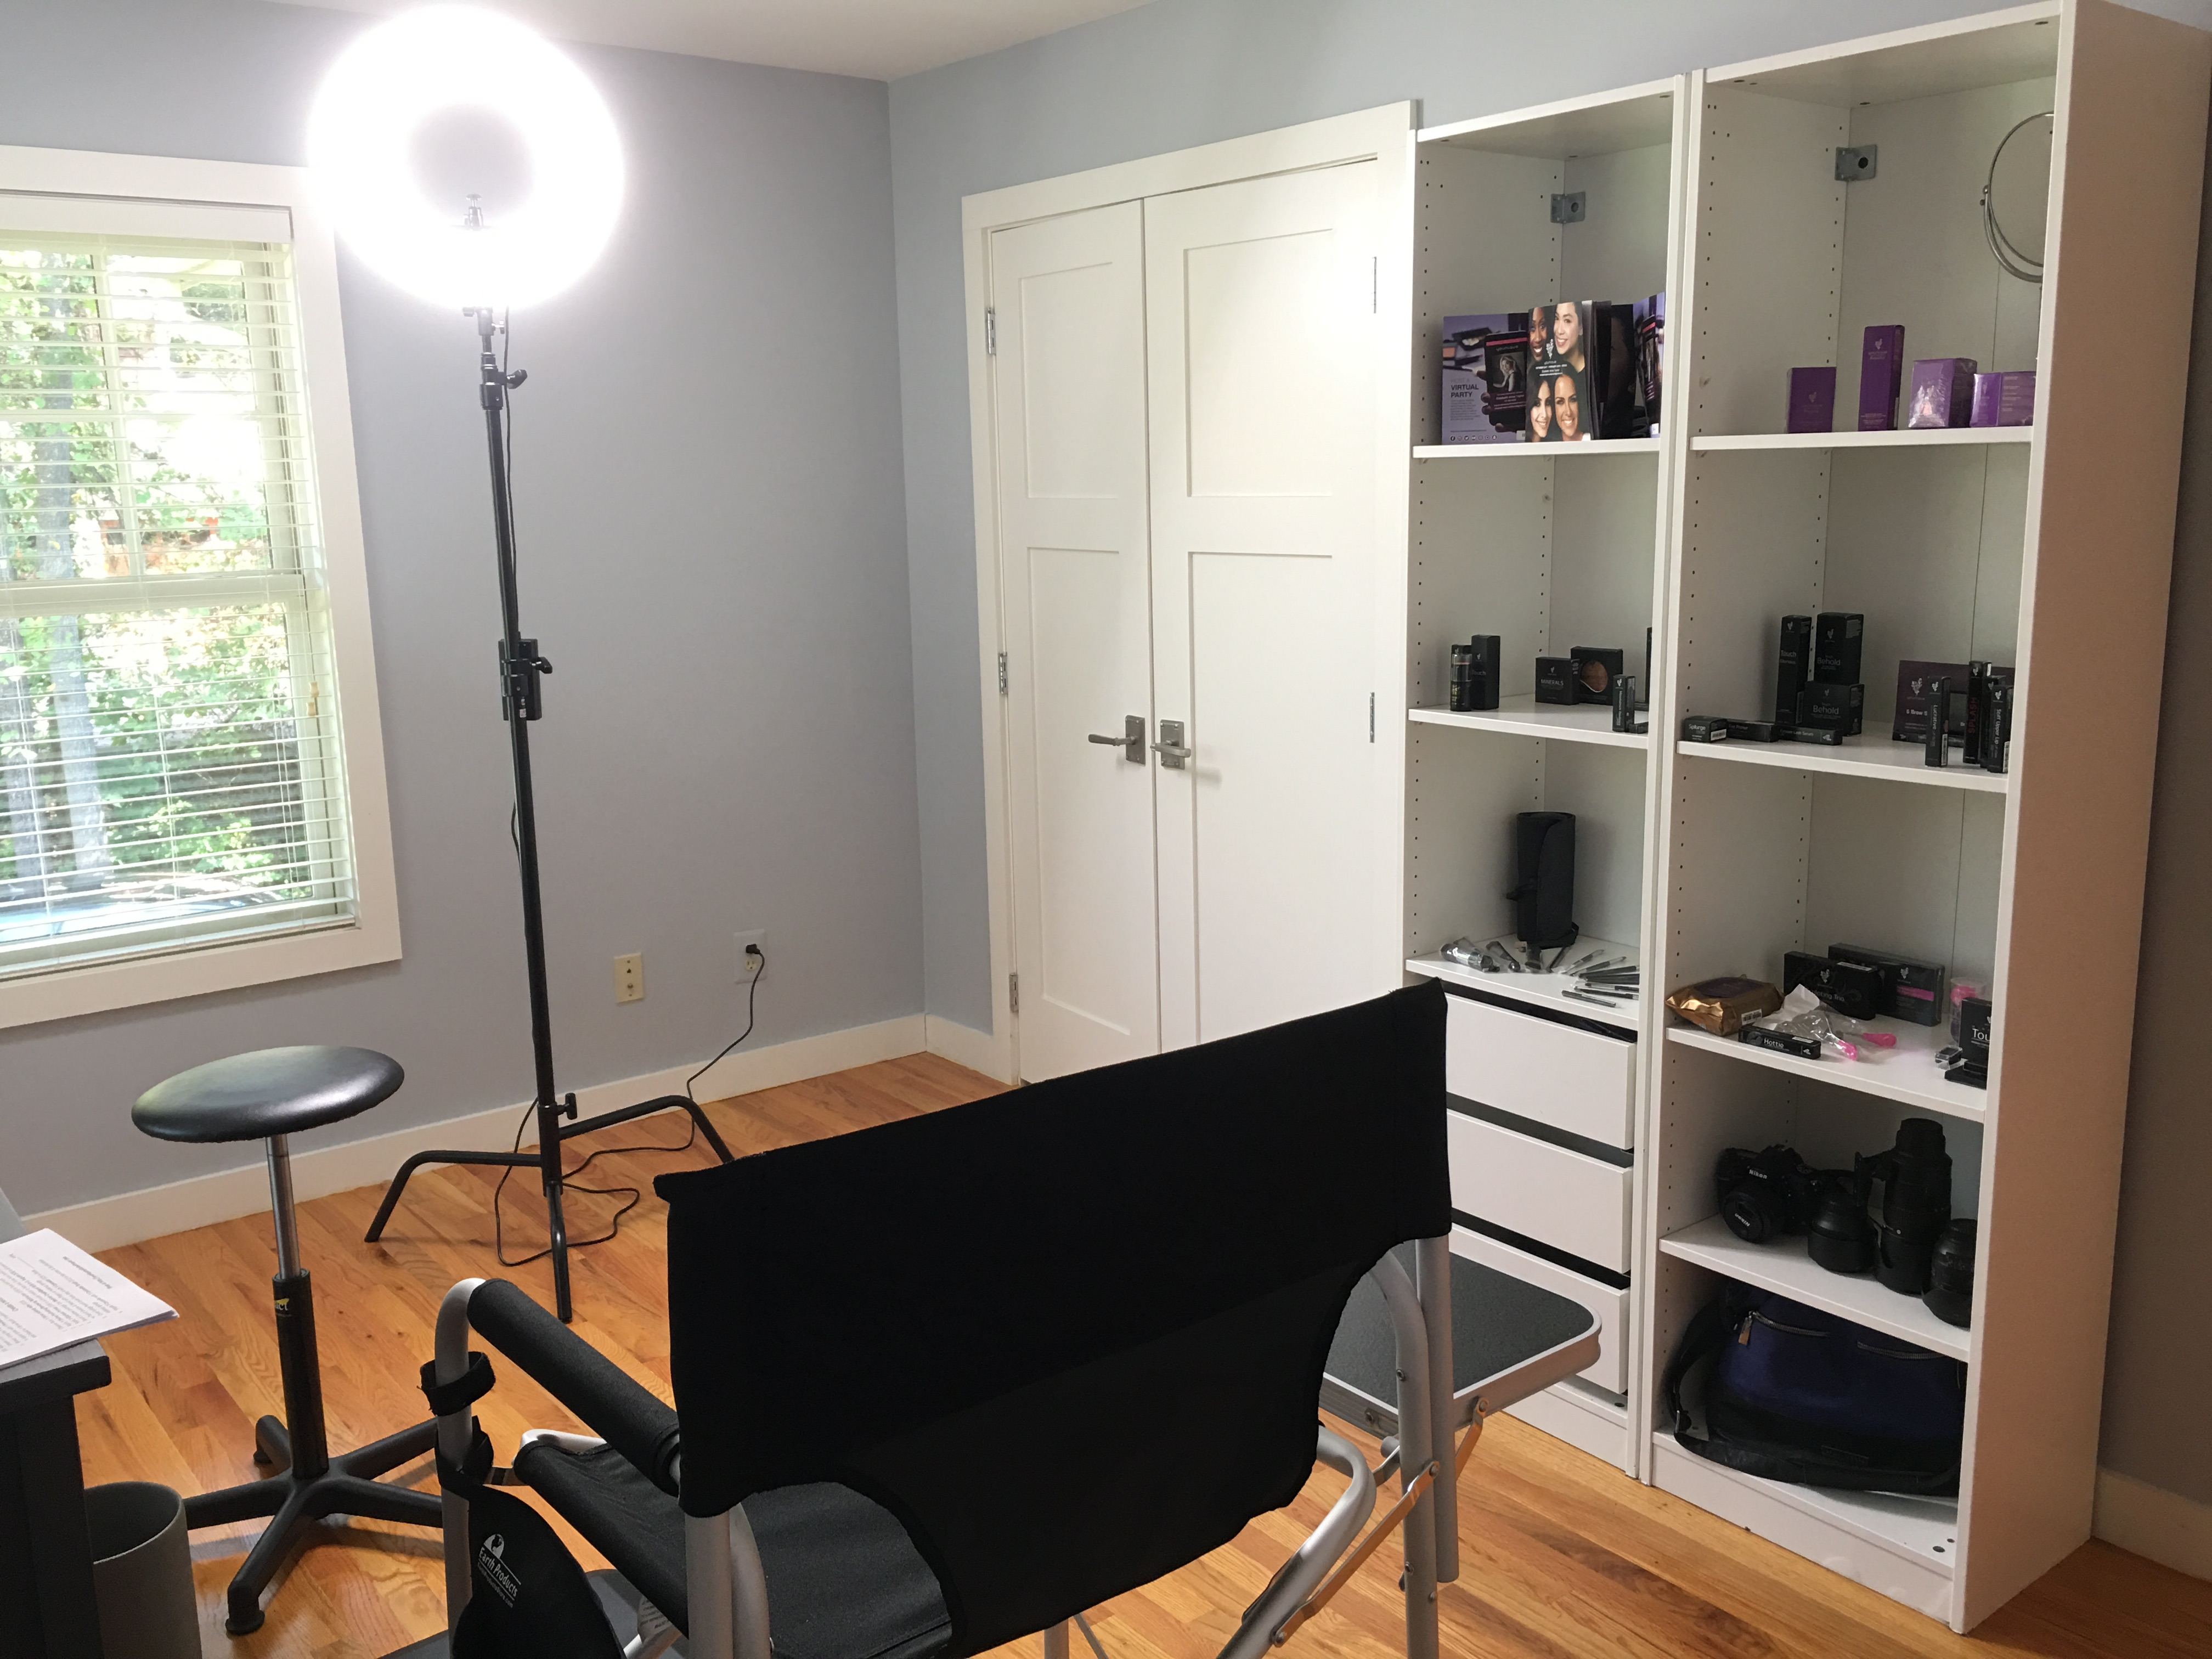 Here Are Photos Of My New Makeup Studio. Watch For My Wardrobe And  Photography Studio Pics In A Later Post.